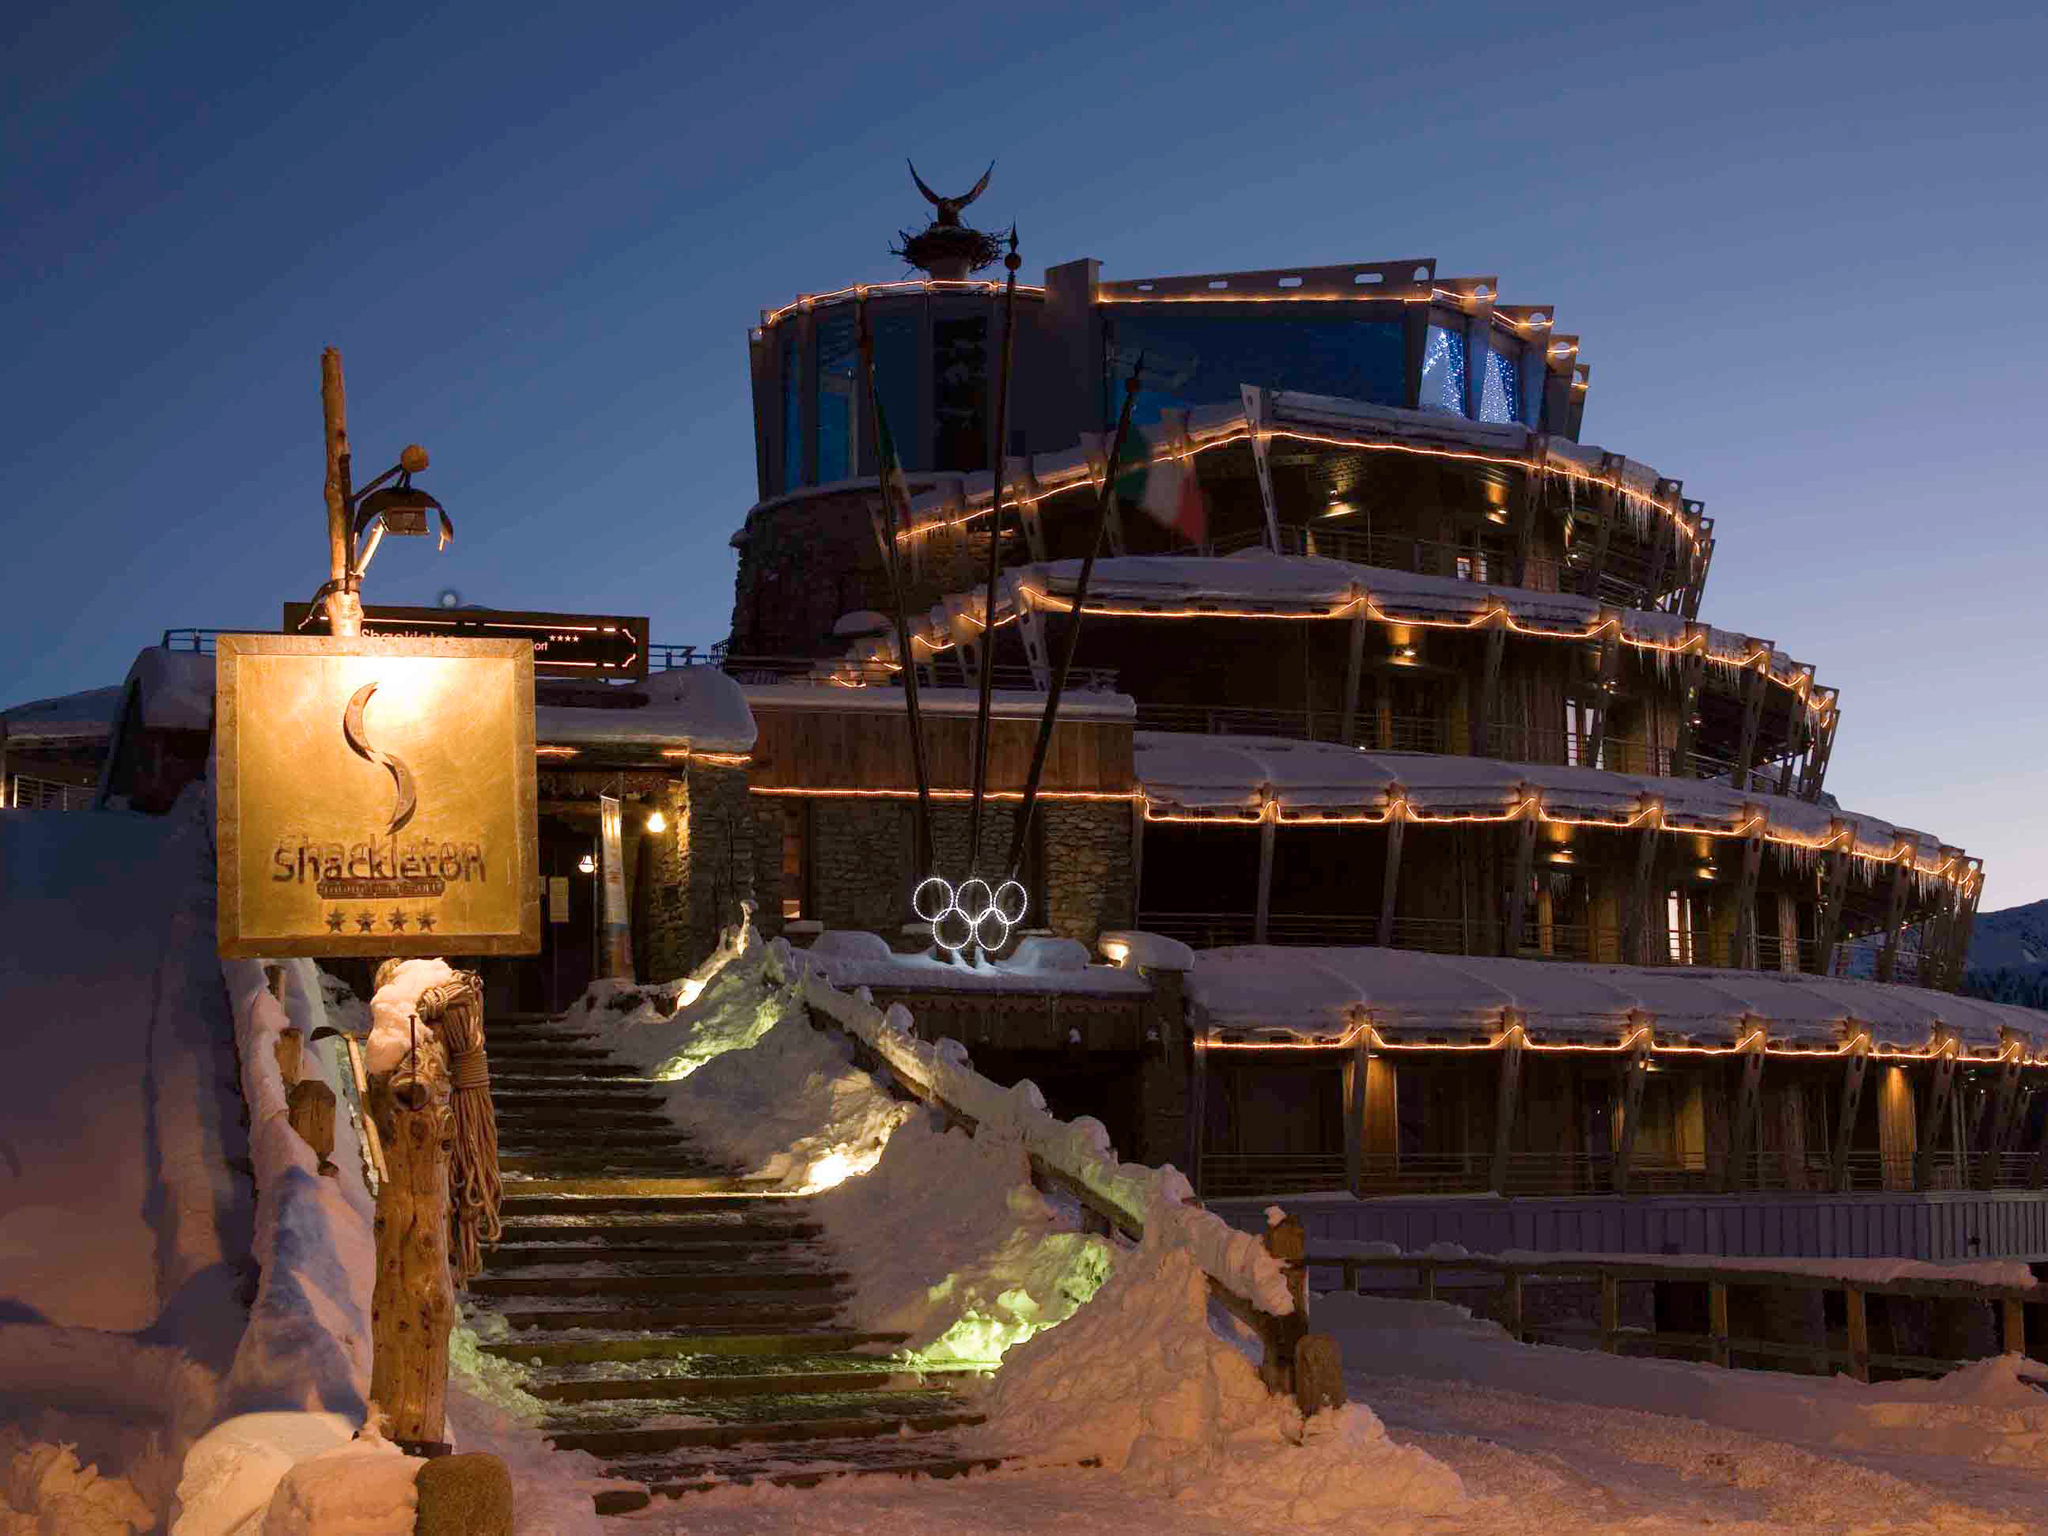 Hotel Shackleton Mountain Resort vacanza per bambini